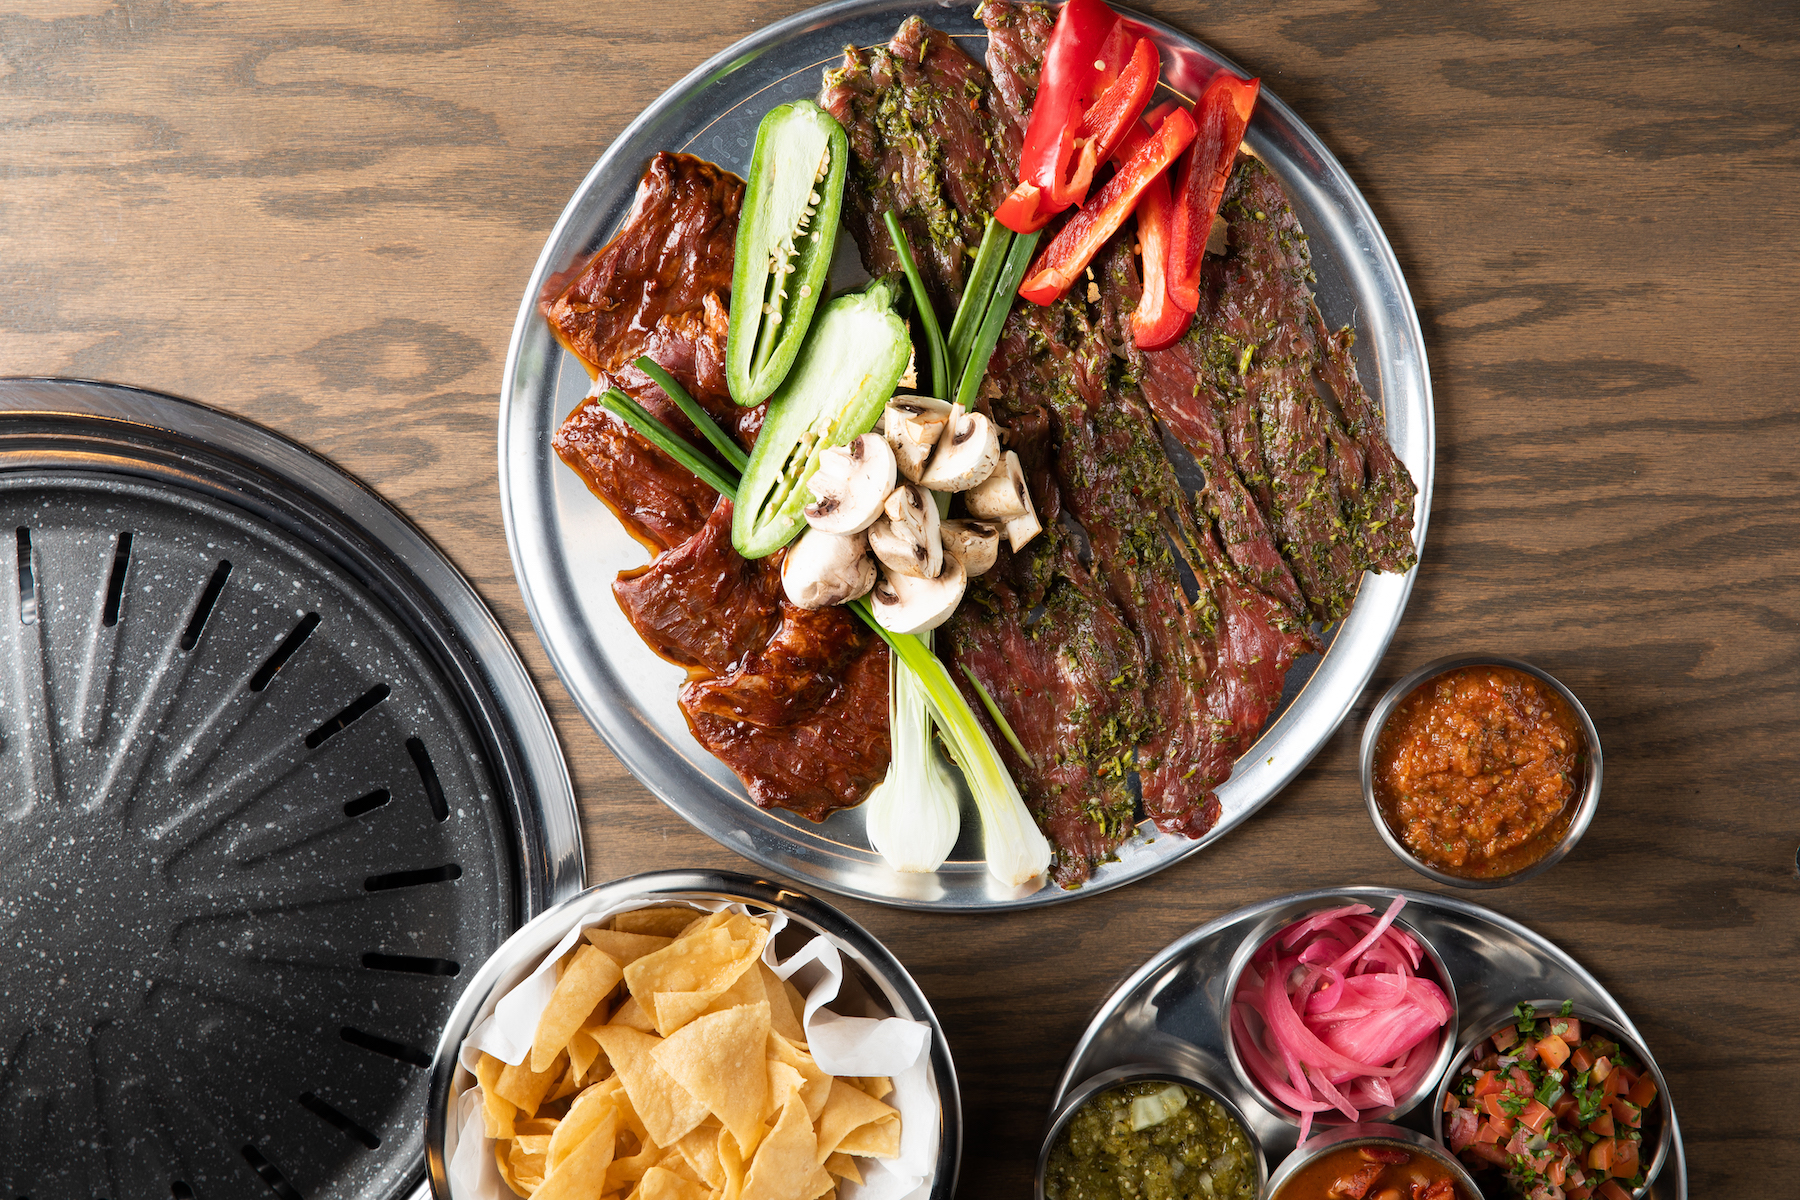 Customers Grill Their Own Mexican Meats at This New Lincoln Park Restaurant